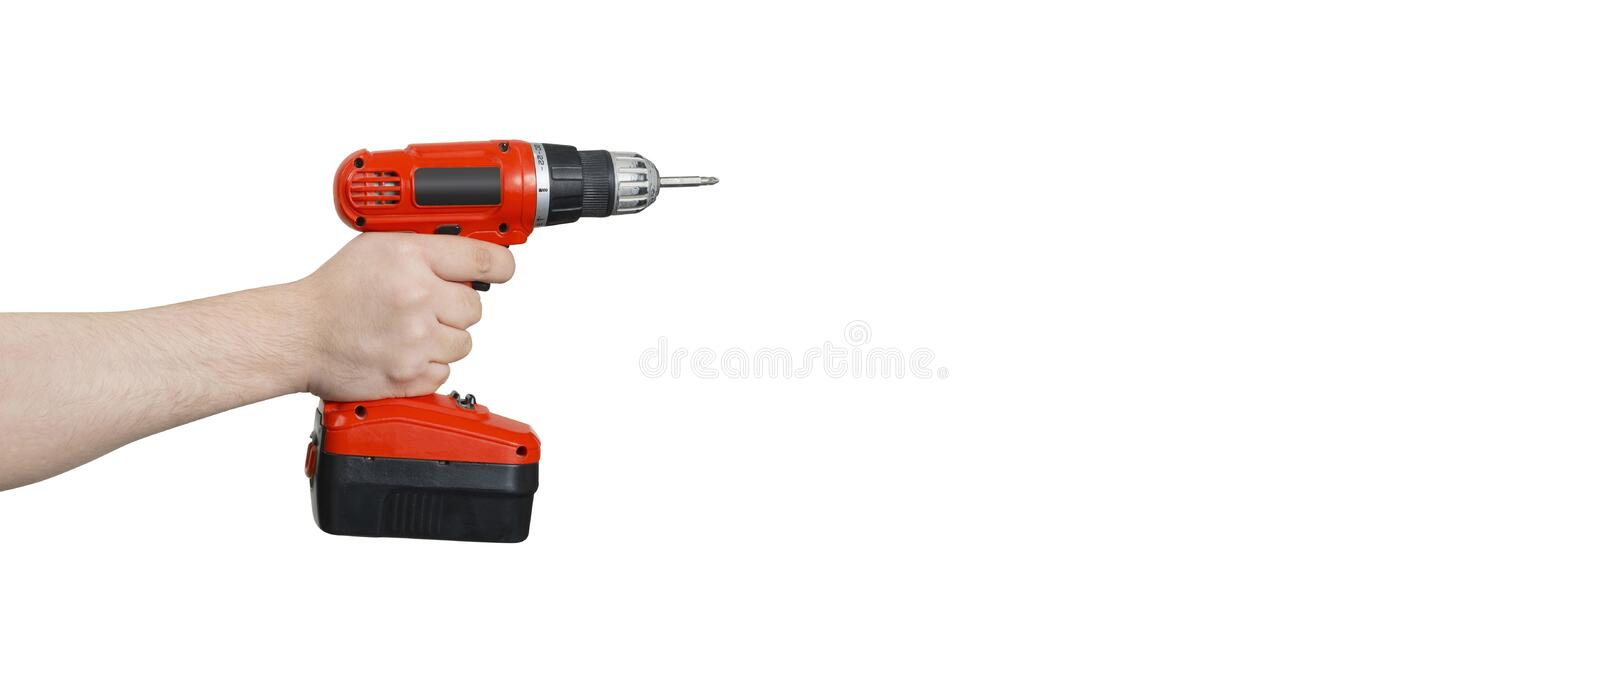 Cordless Electric Drill or Screwdriver in Hand with Clipping Pat stock images